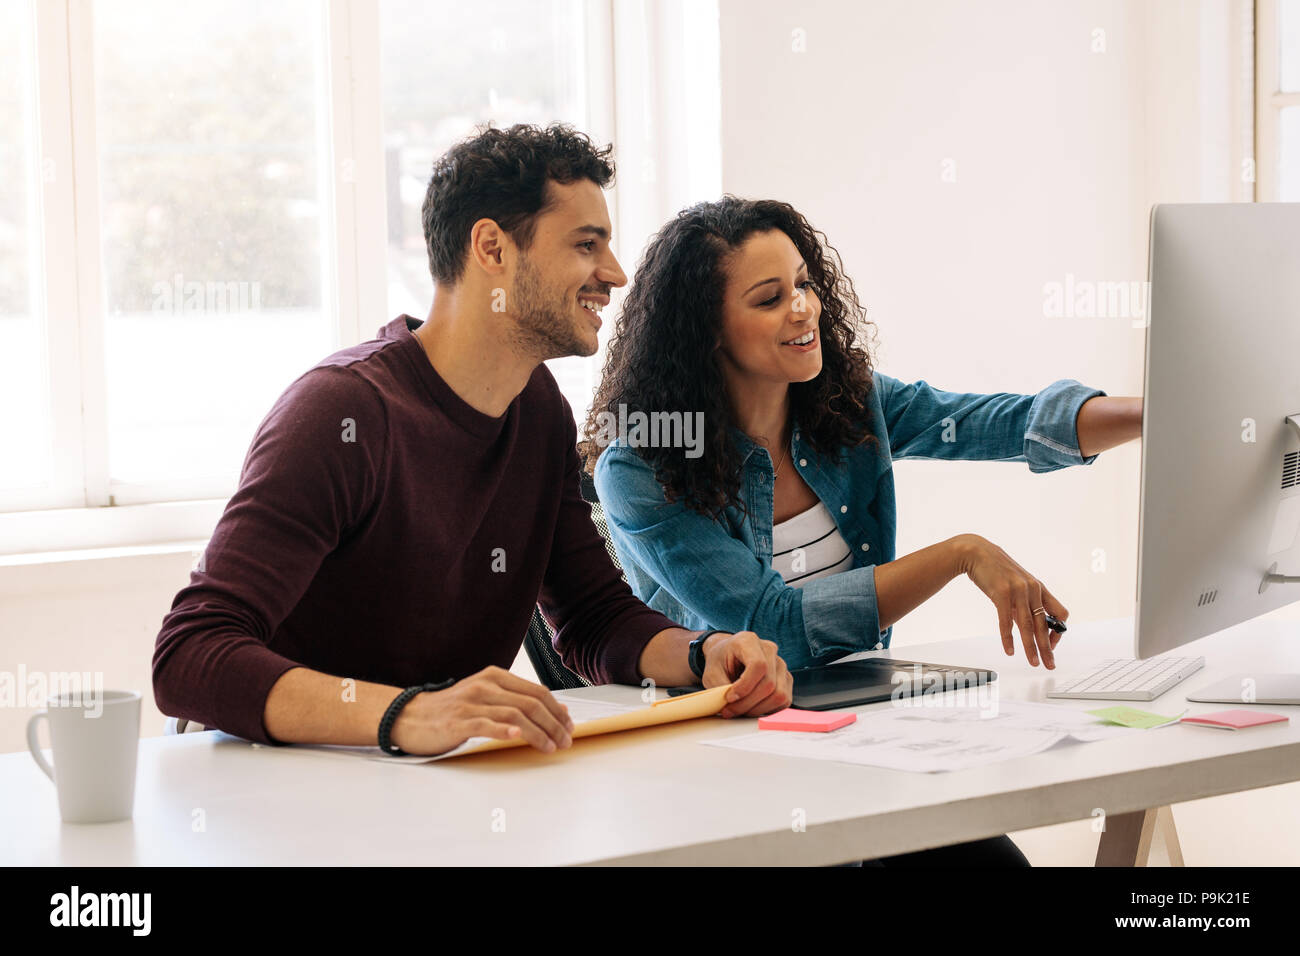 Businesswoman pointing towards the computer with a digital writing pad on the table. Woman entrepreneur discussing work with colleague sitting at her  - Stock Image